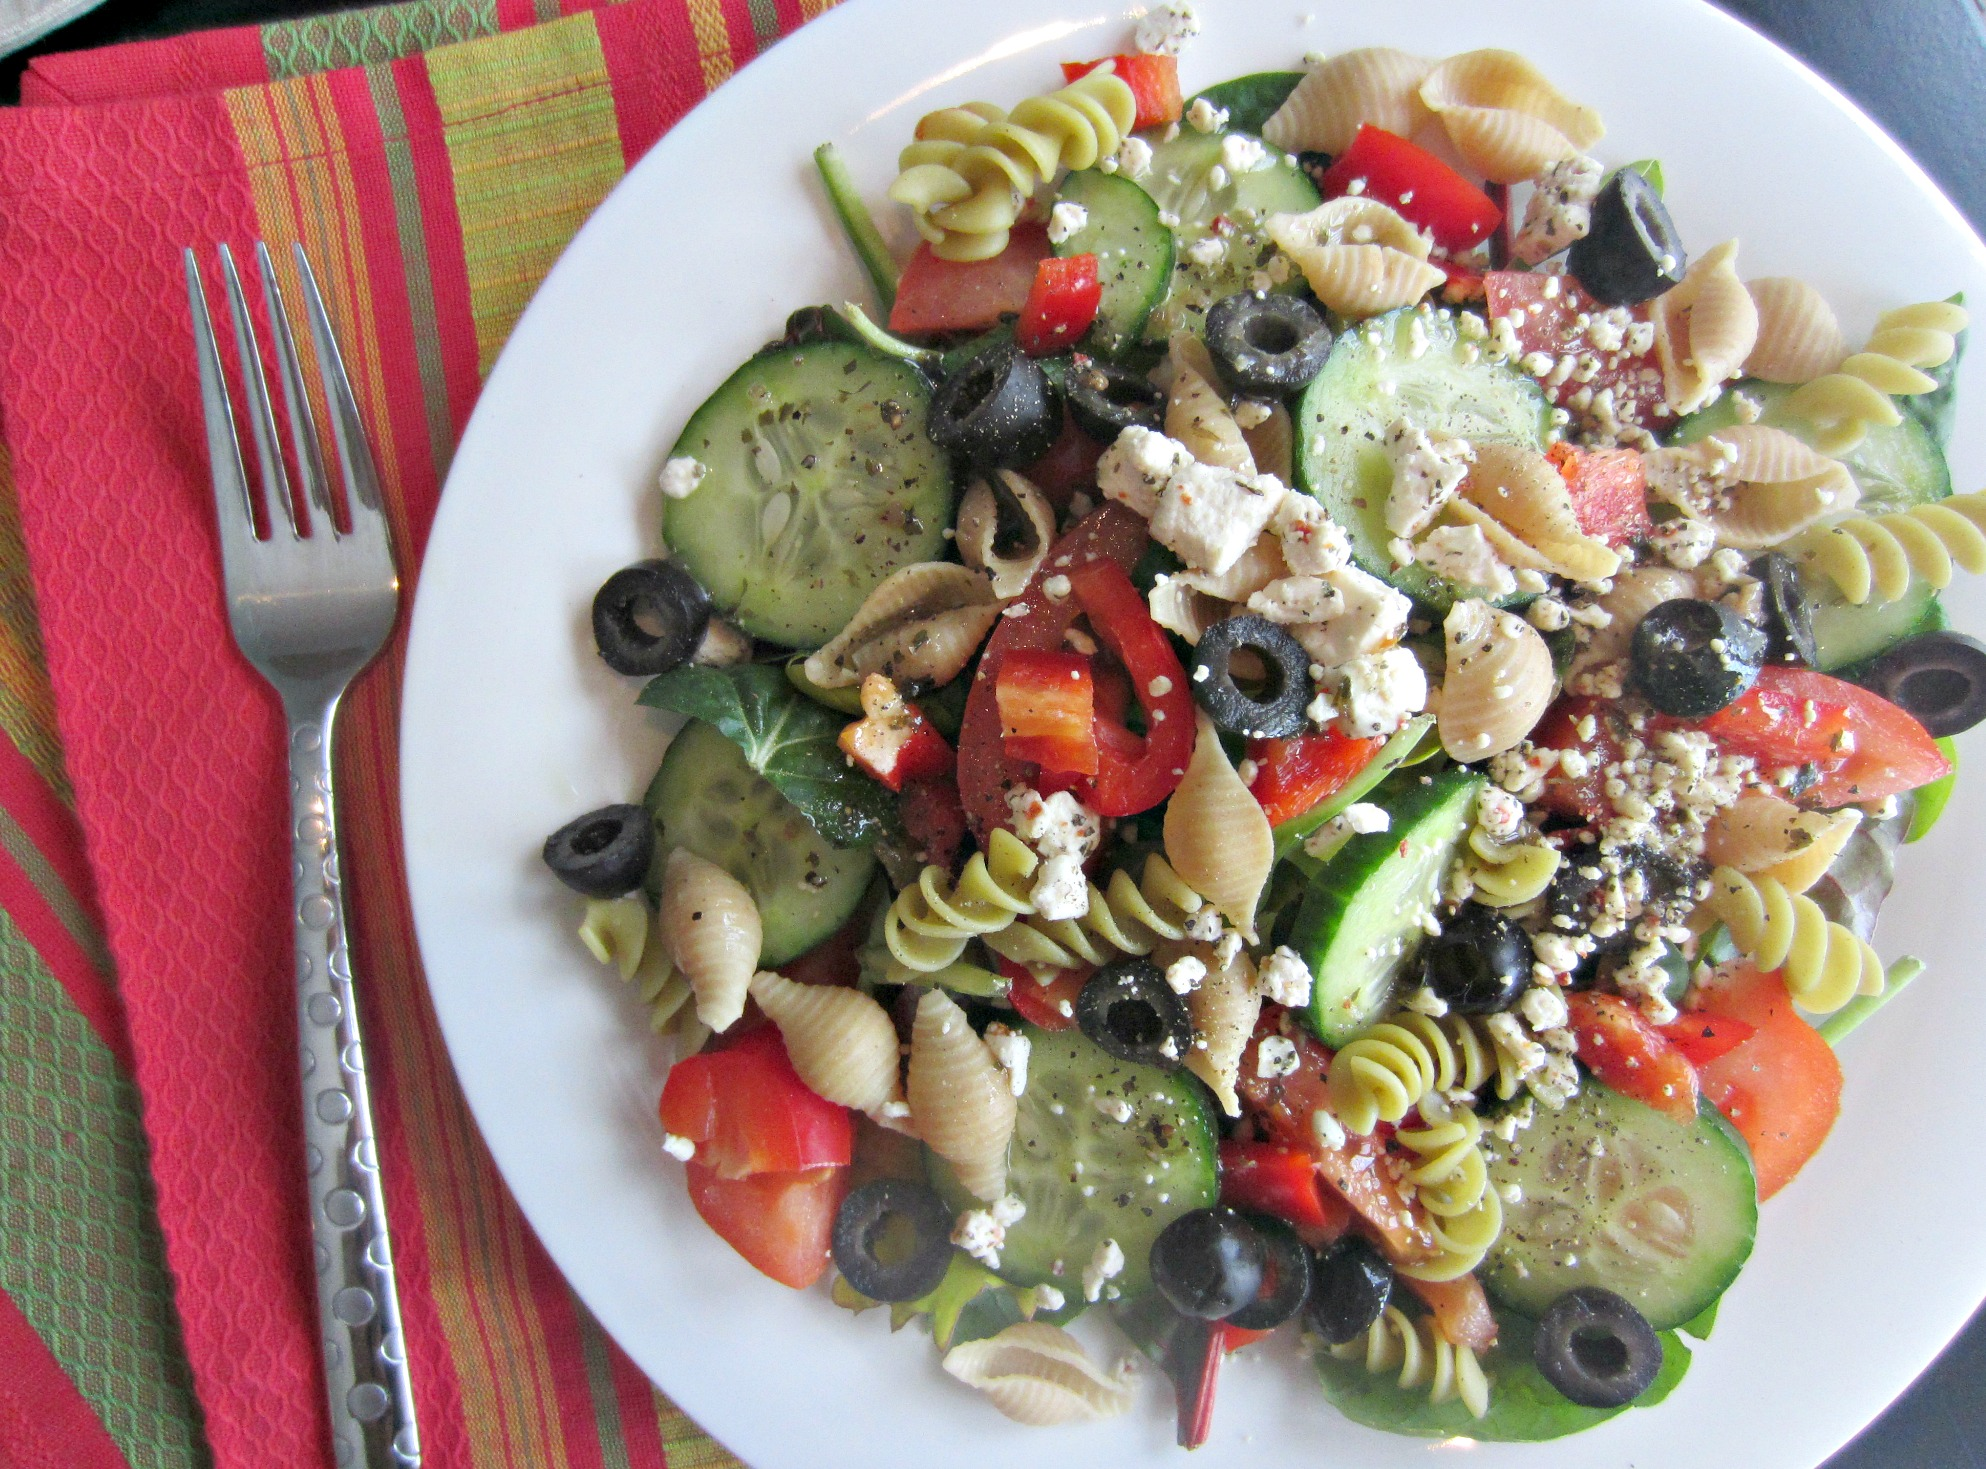 salad with noodles